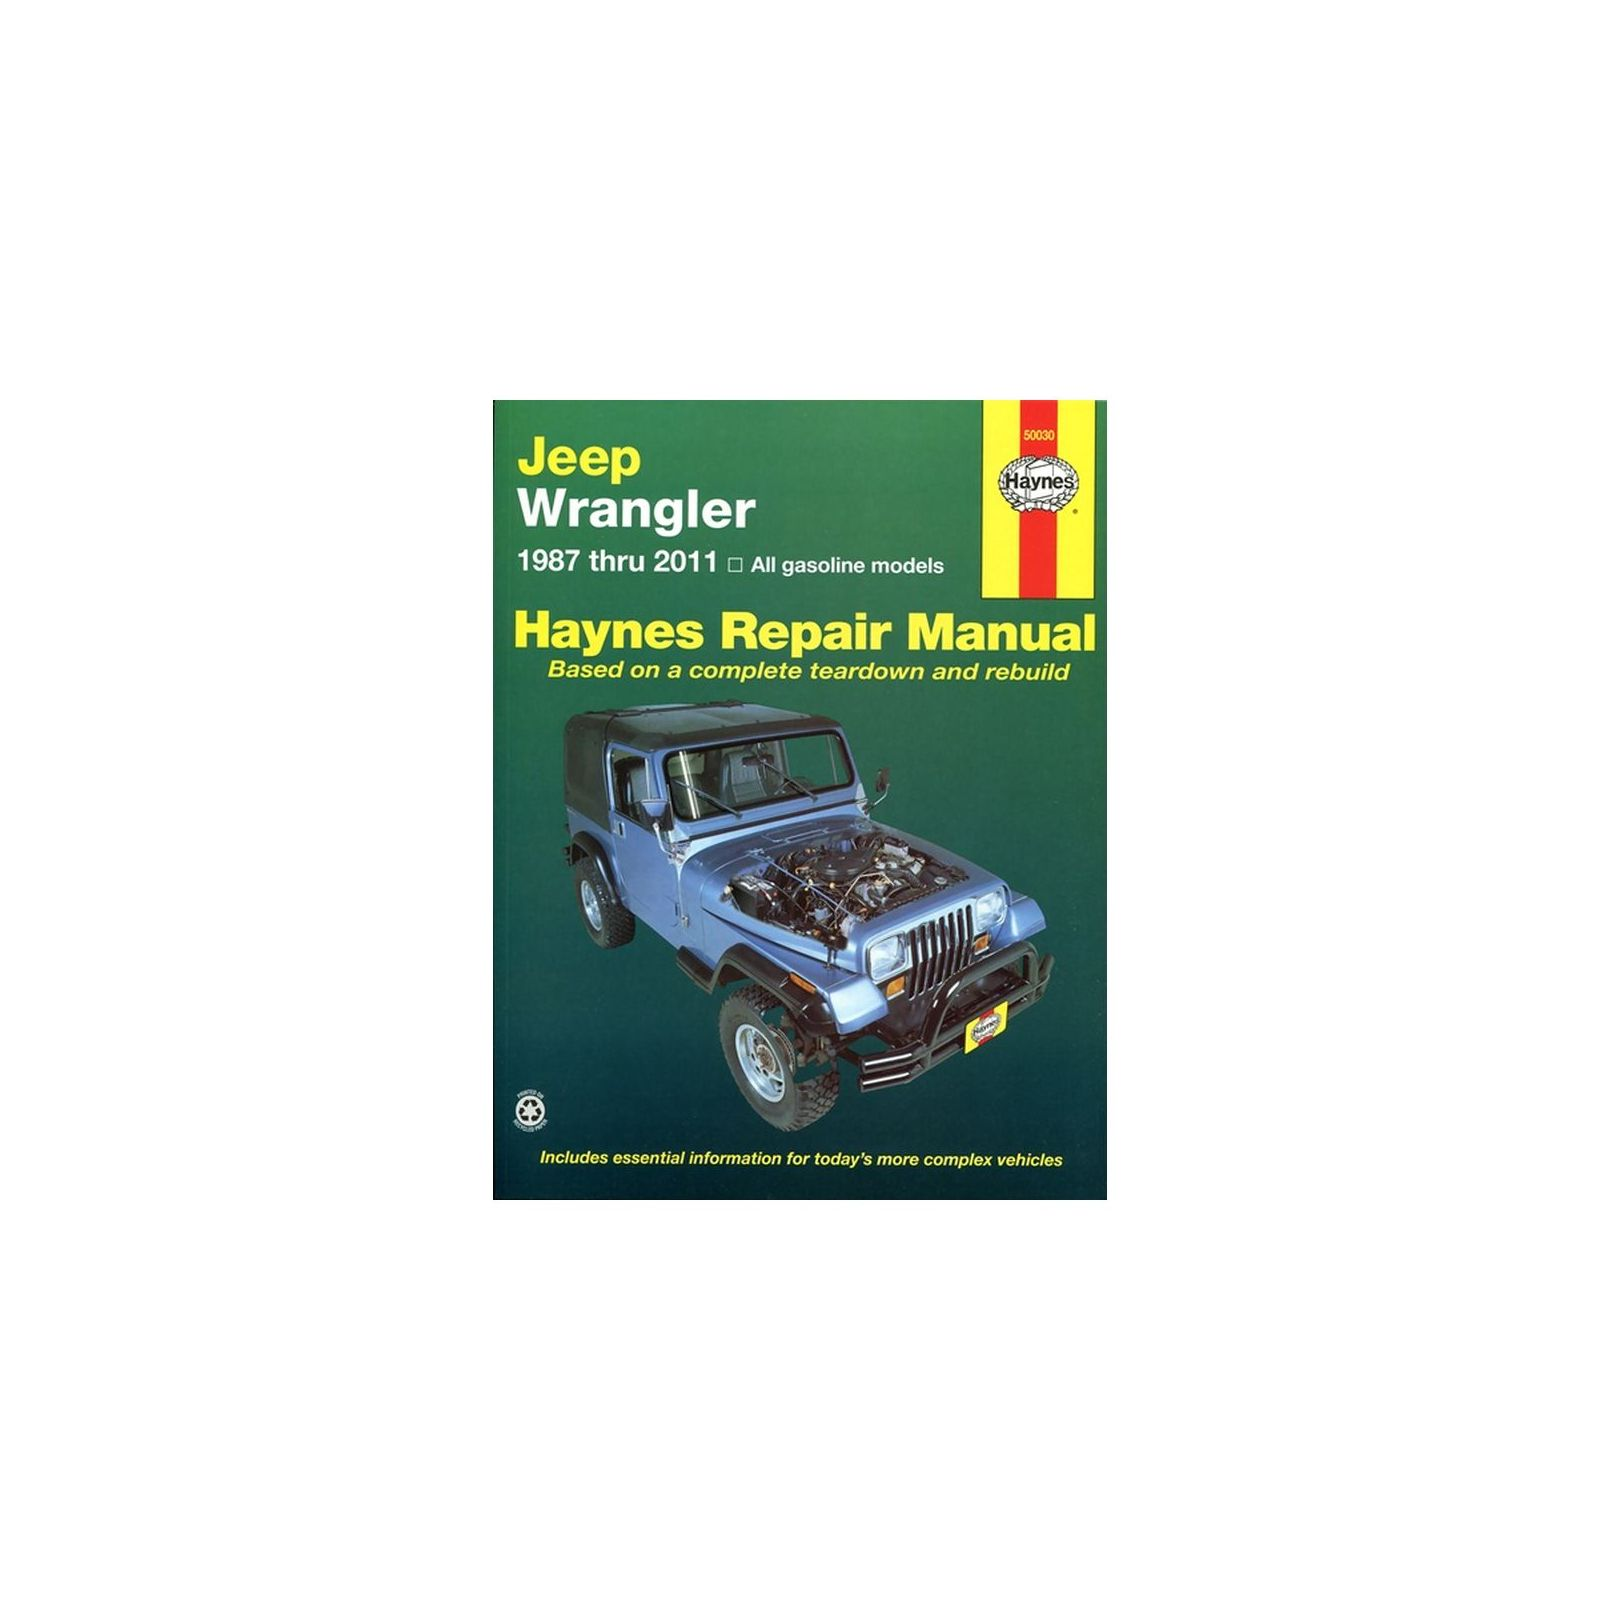 Haynes manual coupon dove soap coupons uk audi a4 4 cylinder 1995 2000 service and repair manual haynes service and repair manuals by downloadfinancial markets and institutions with stock trak fandeluxe Images